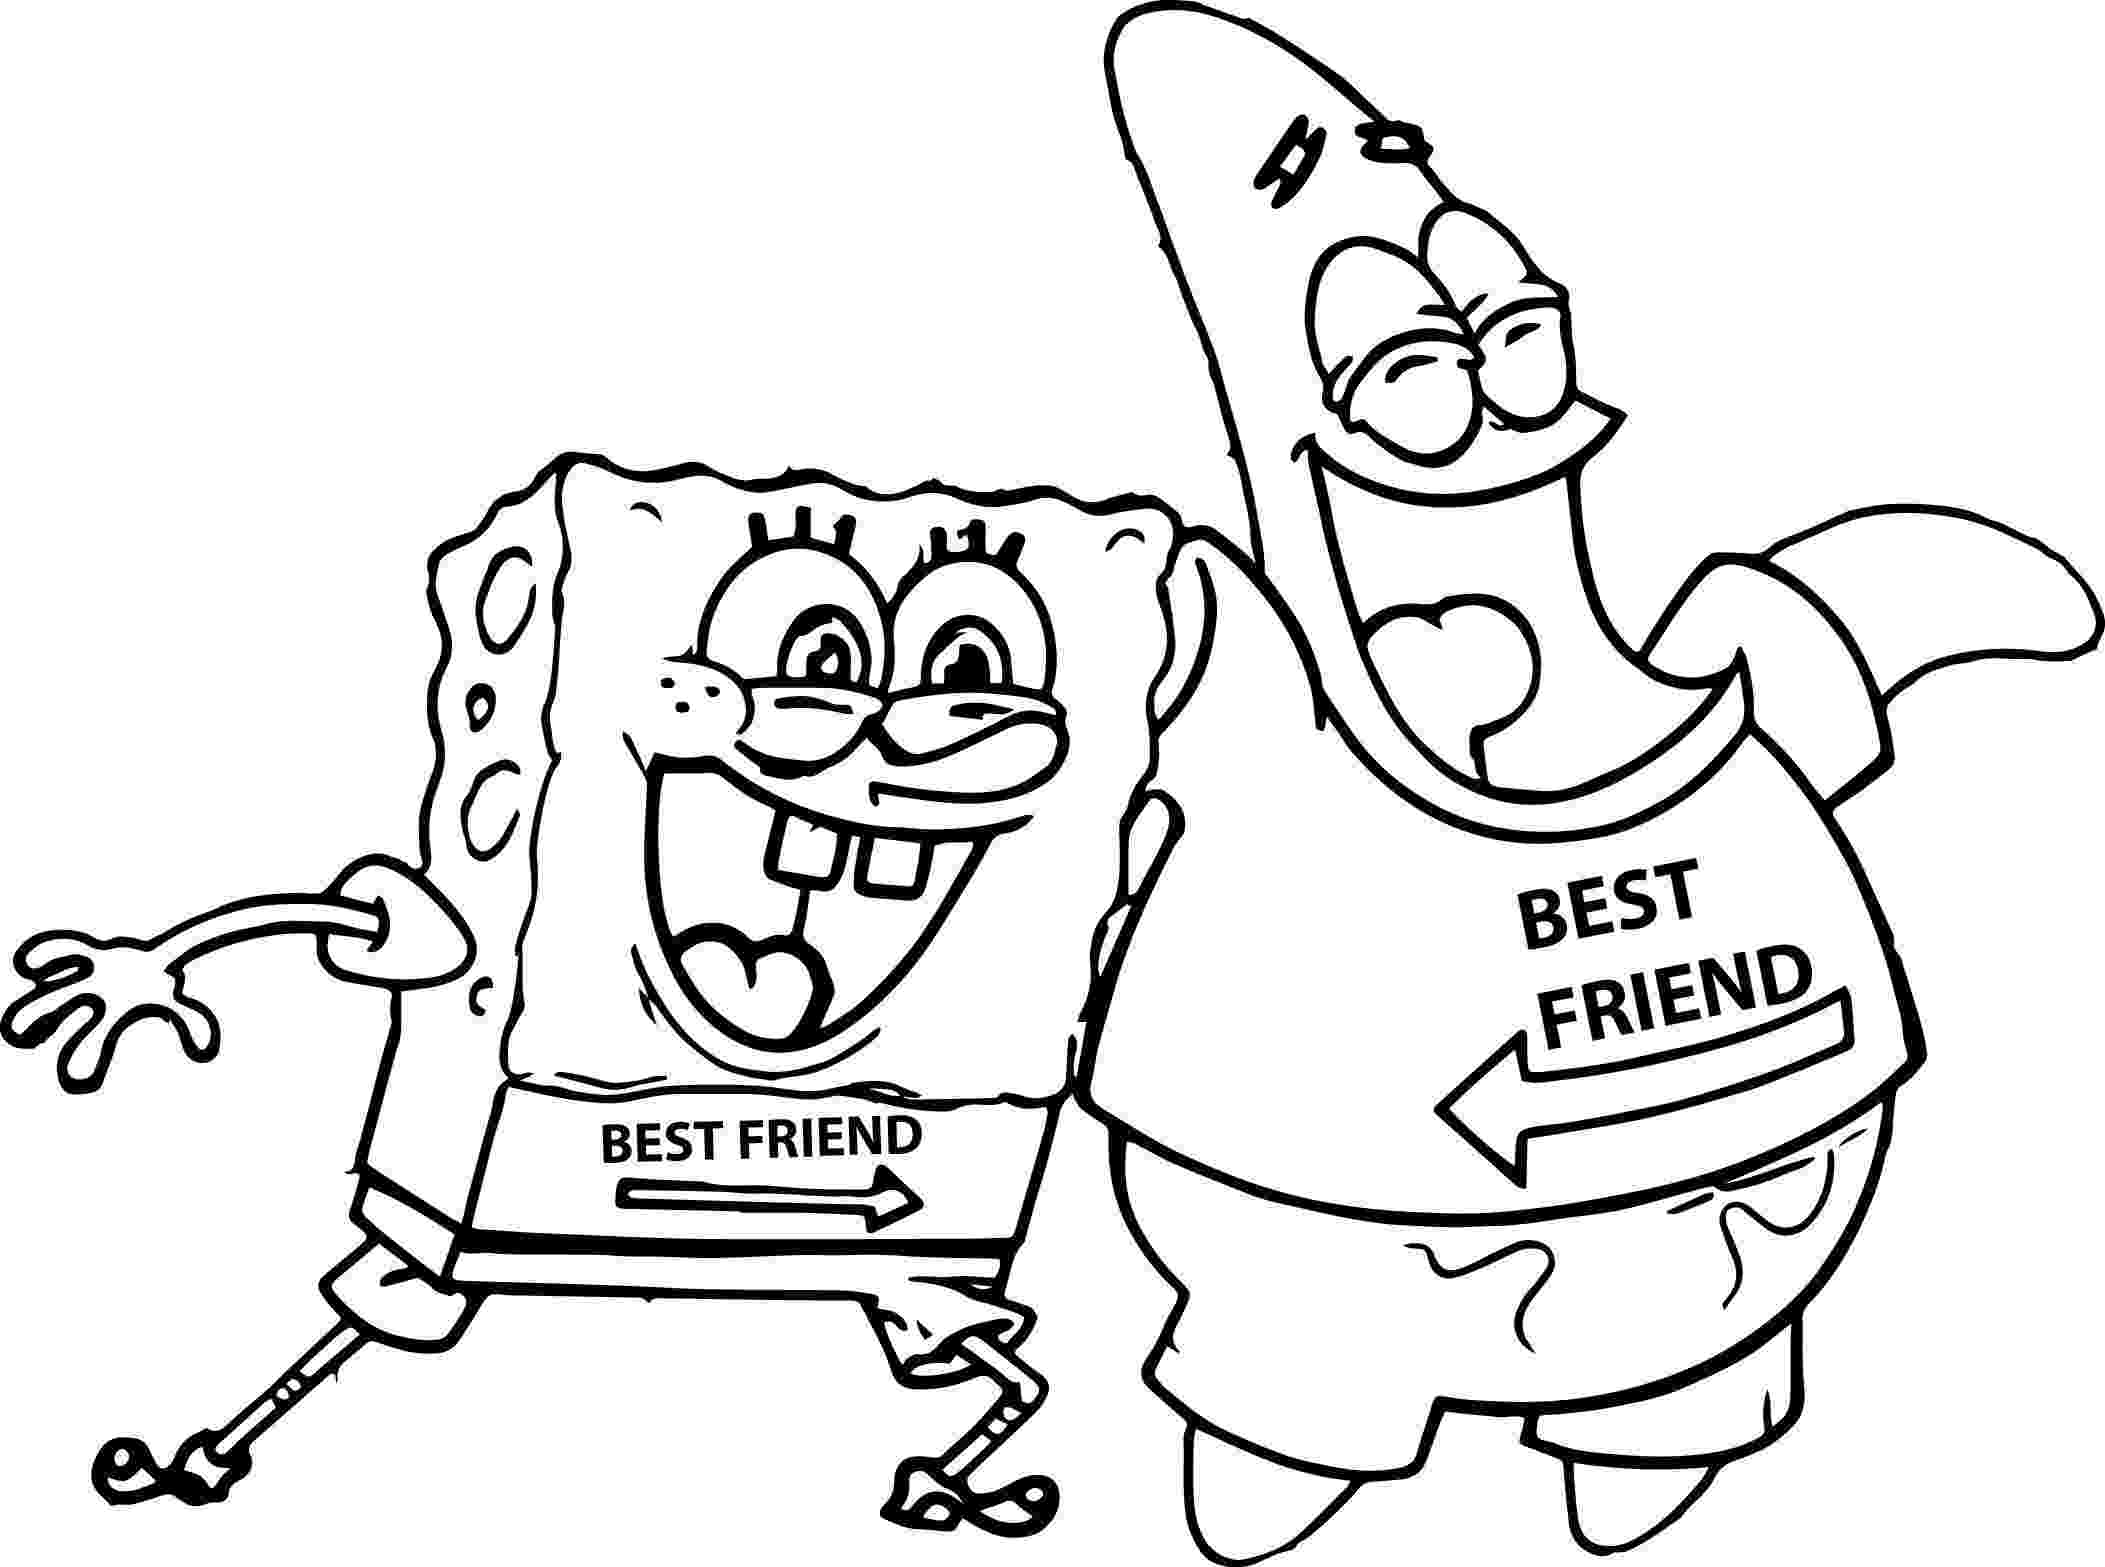 spongebob coloring sheets pdf printable spongebob coloring pages for kids cool2bkids sheets pdf spongebob coloring